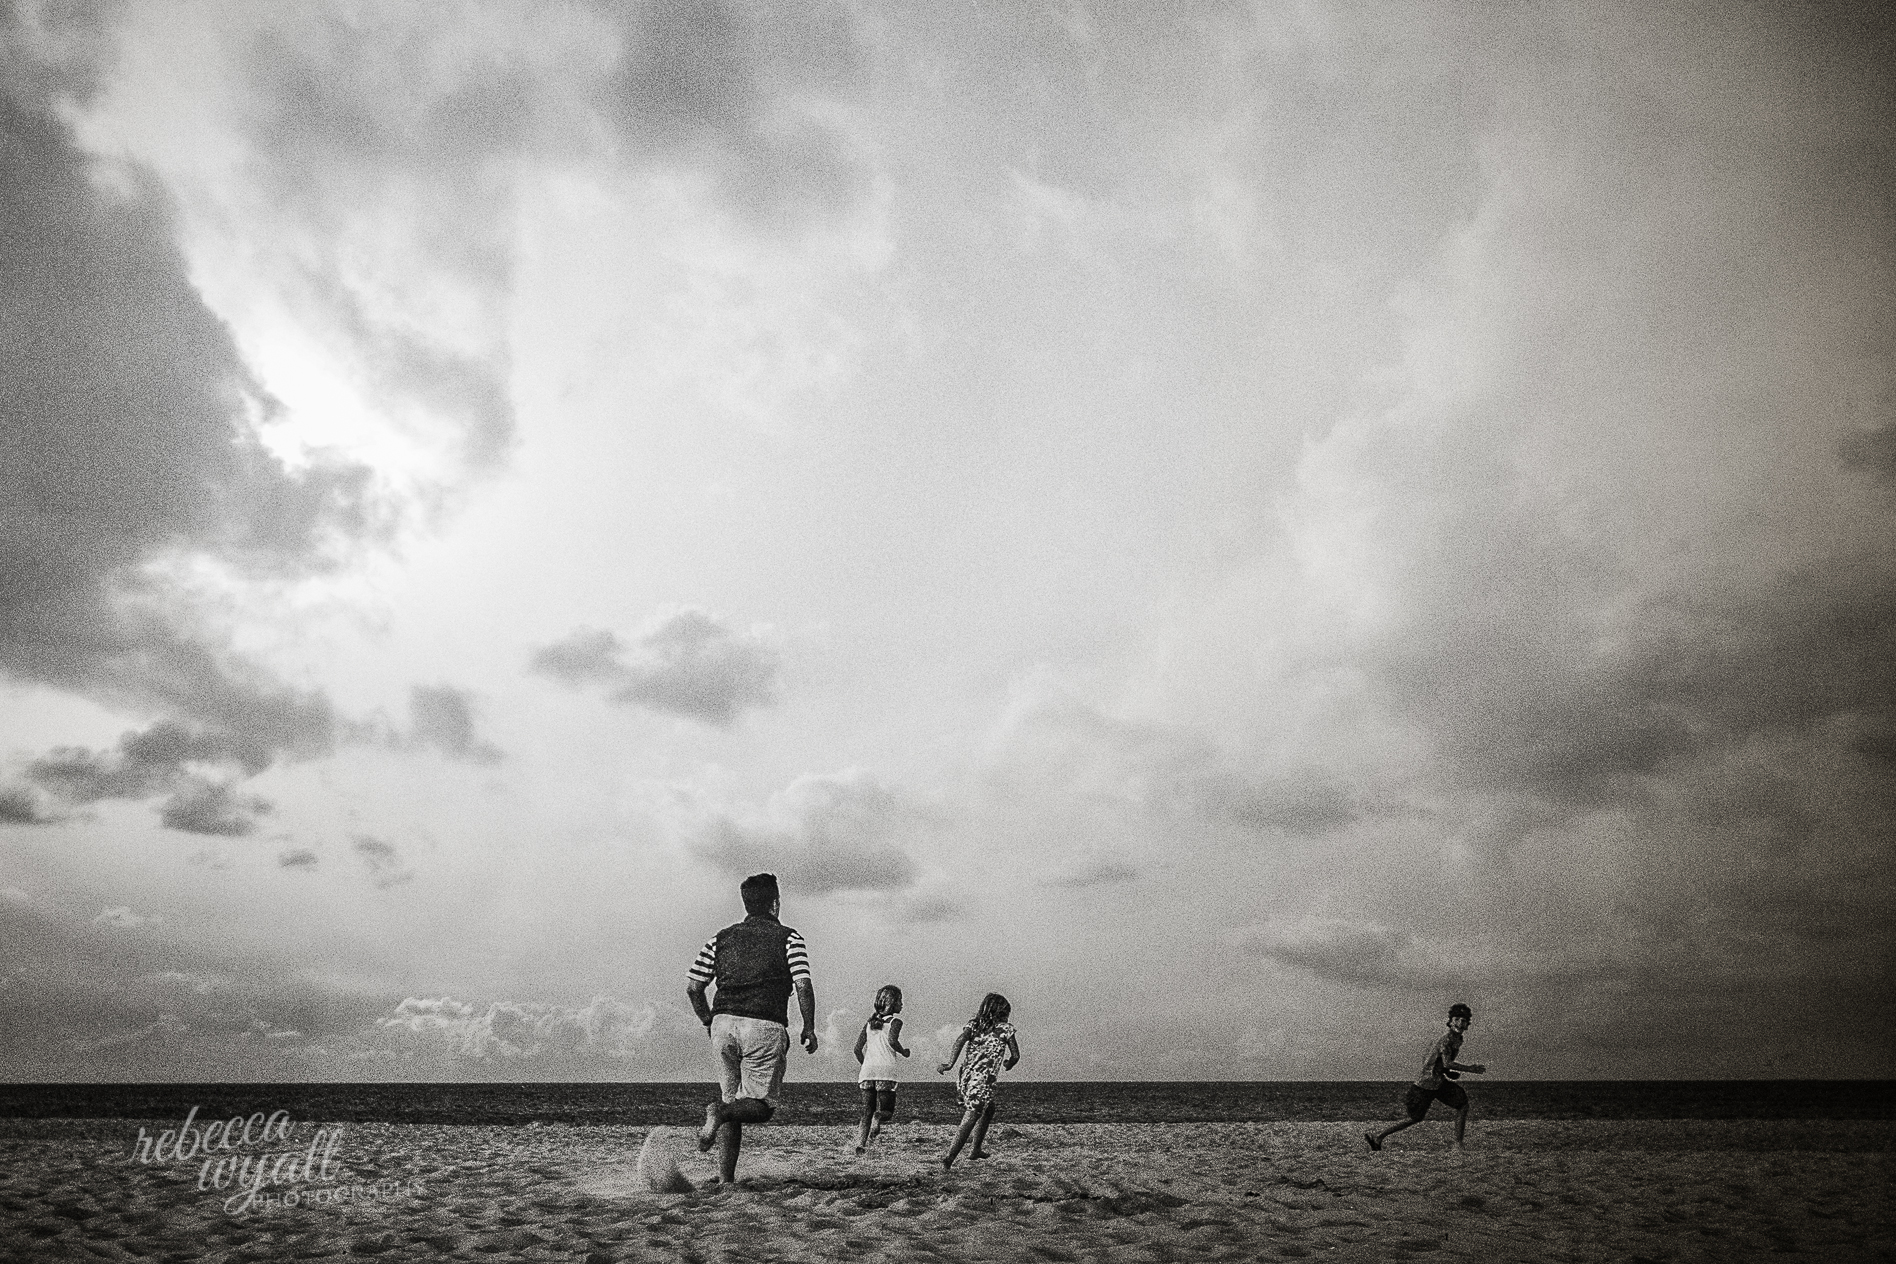 Dad & Kids Running on Beach in Black and White